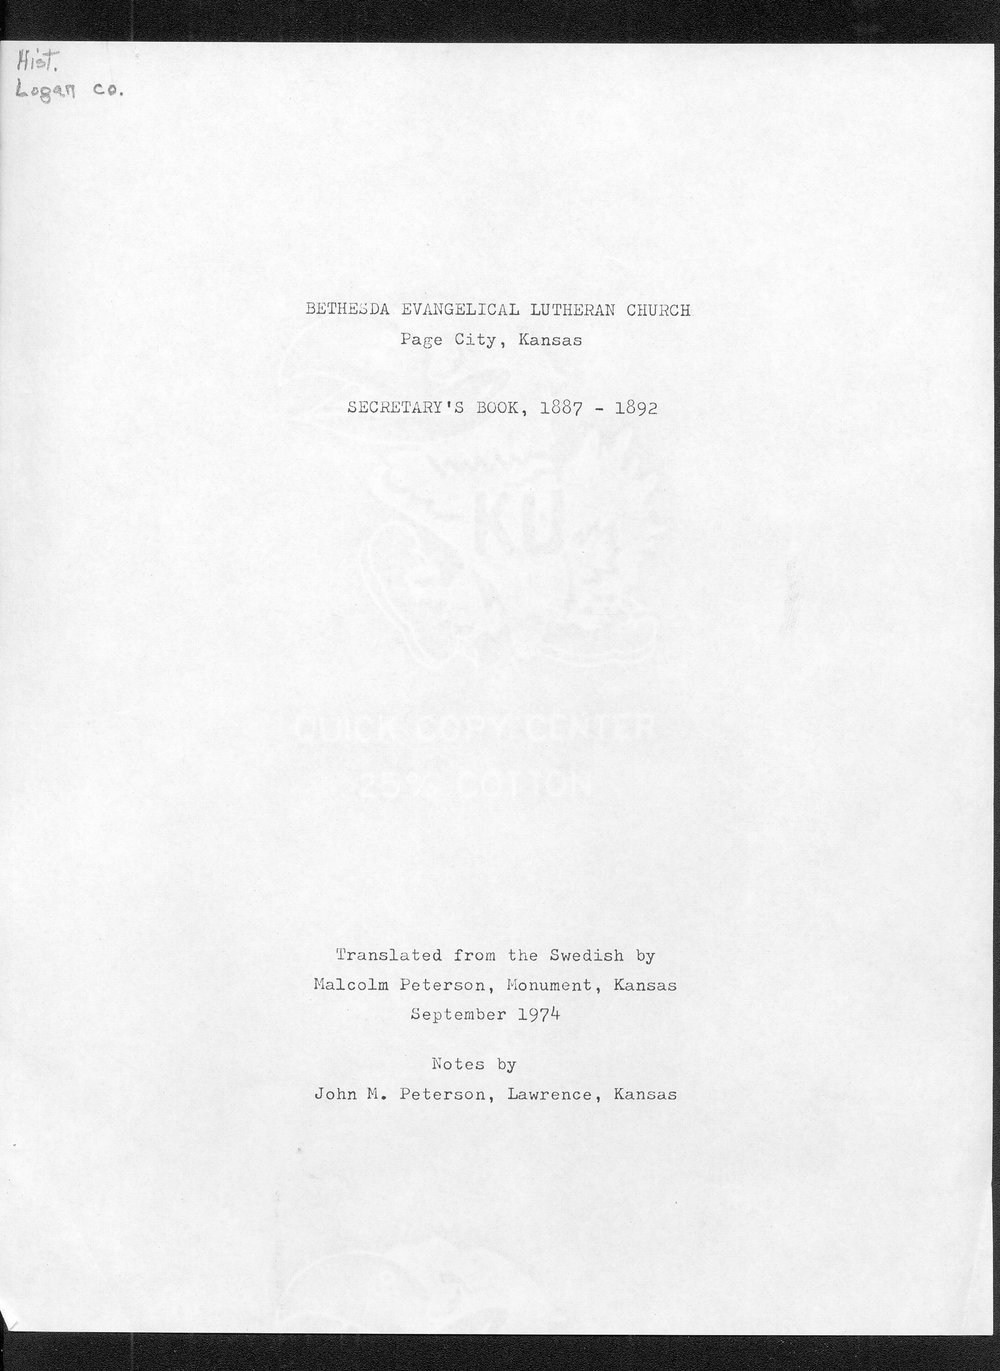 Bethesda Evangelical Lutheran Church, Page City, Kansas.  Secretary's book, 1887-1892 - Title Page